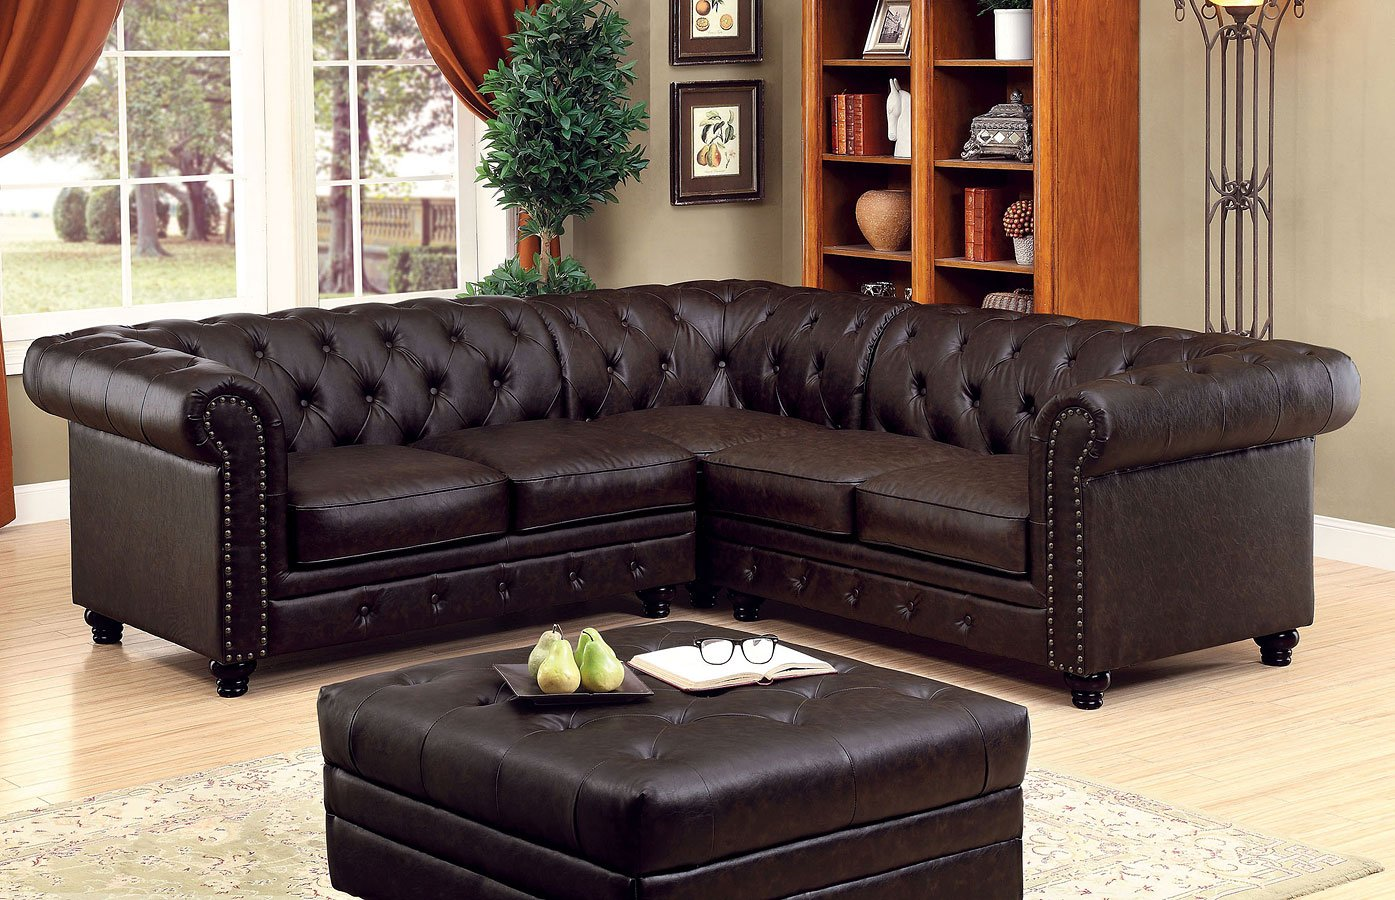 Stanford Sectional Living Room Set (Brown)